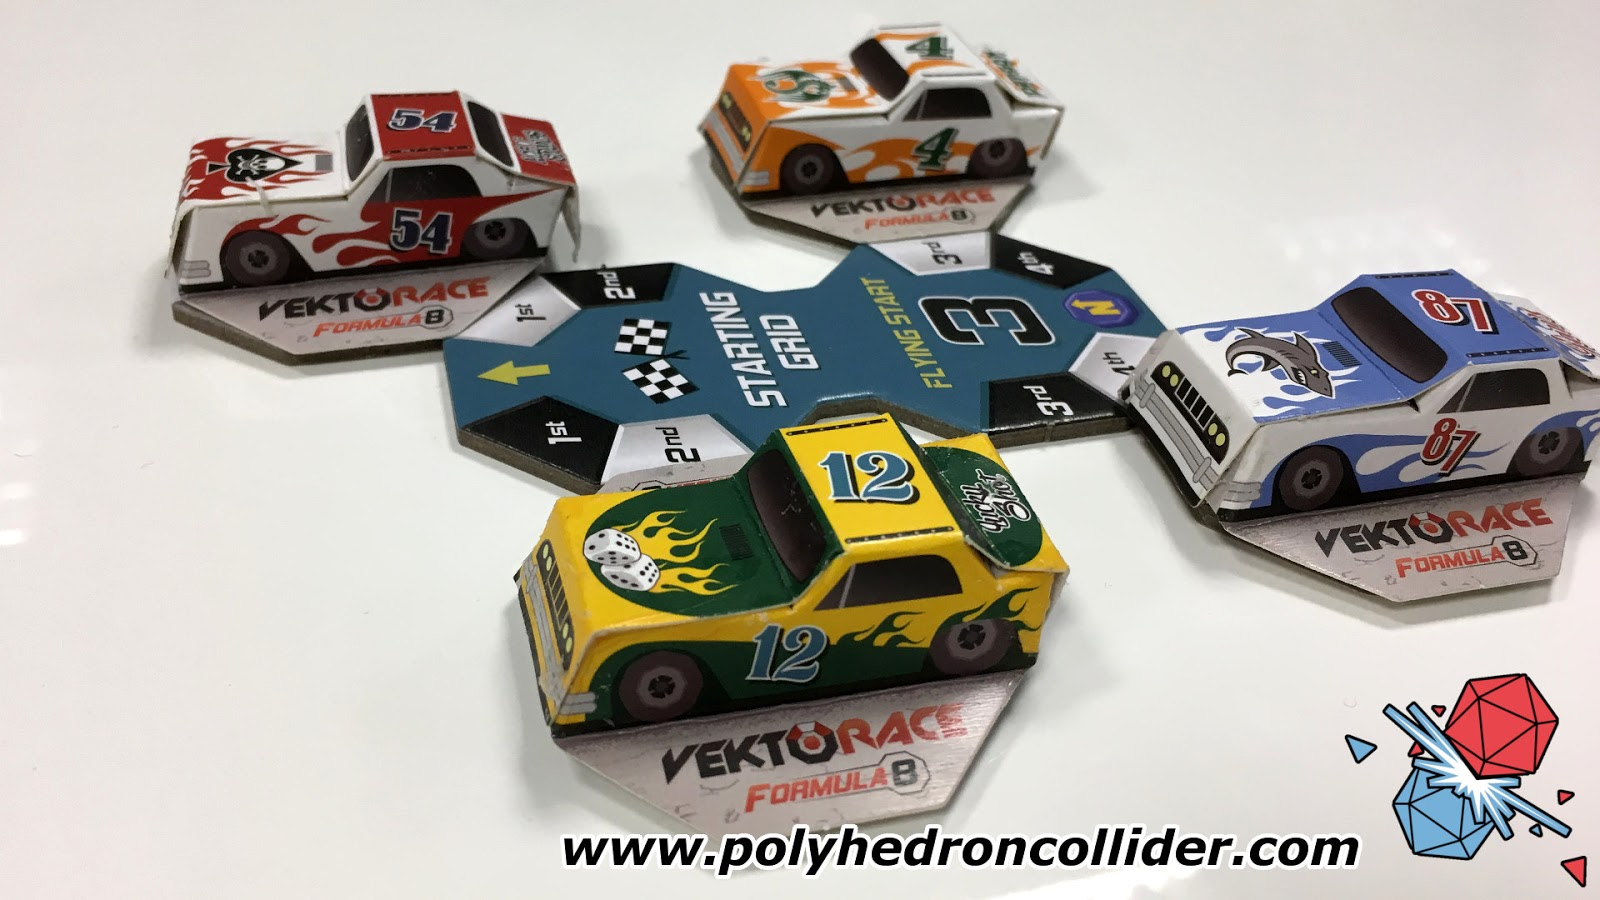 Review Roundup - Good Cop Bad Cop, Vektorace Formula 8, Doodle Rush, Krowdfunder and Doomsday Bots